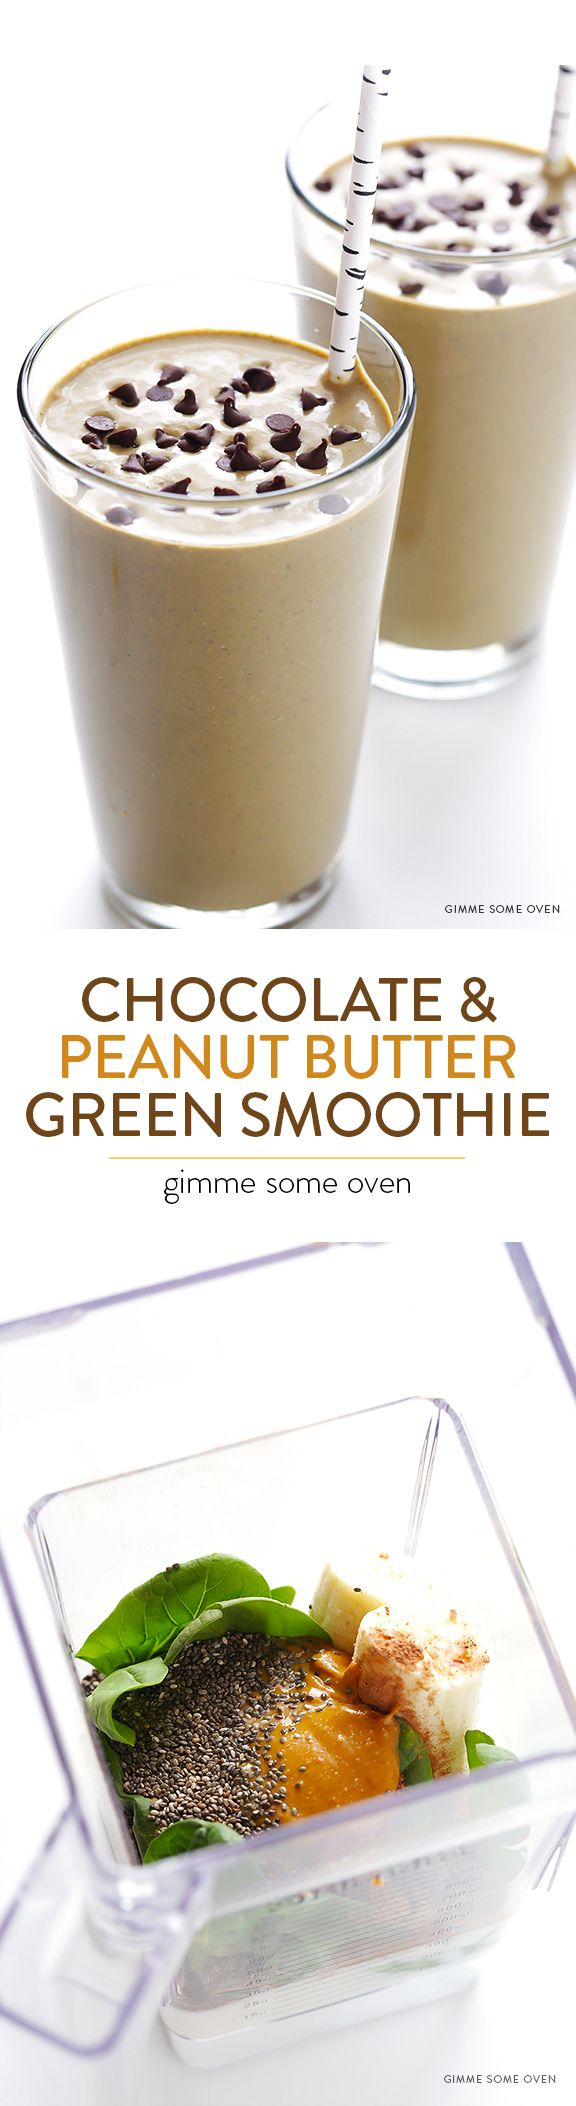 Chocolate Peanut Butter Green Smoothie.